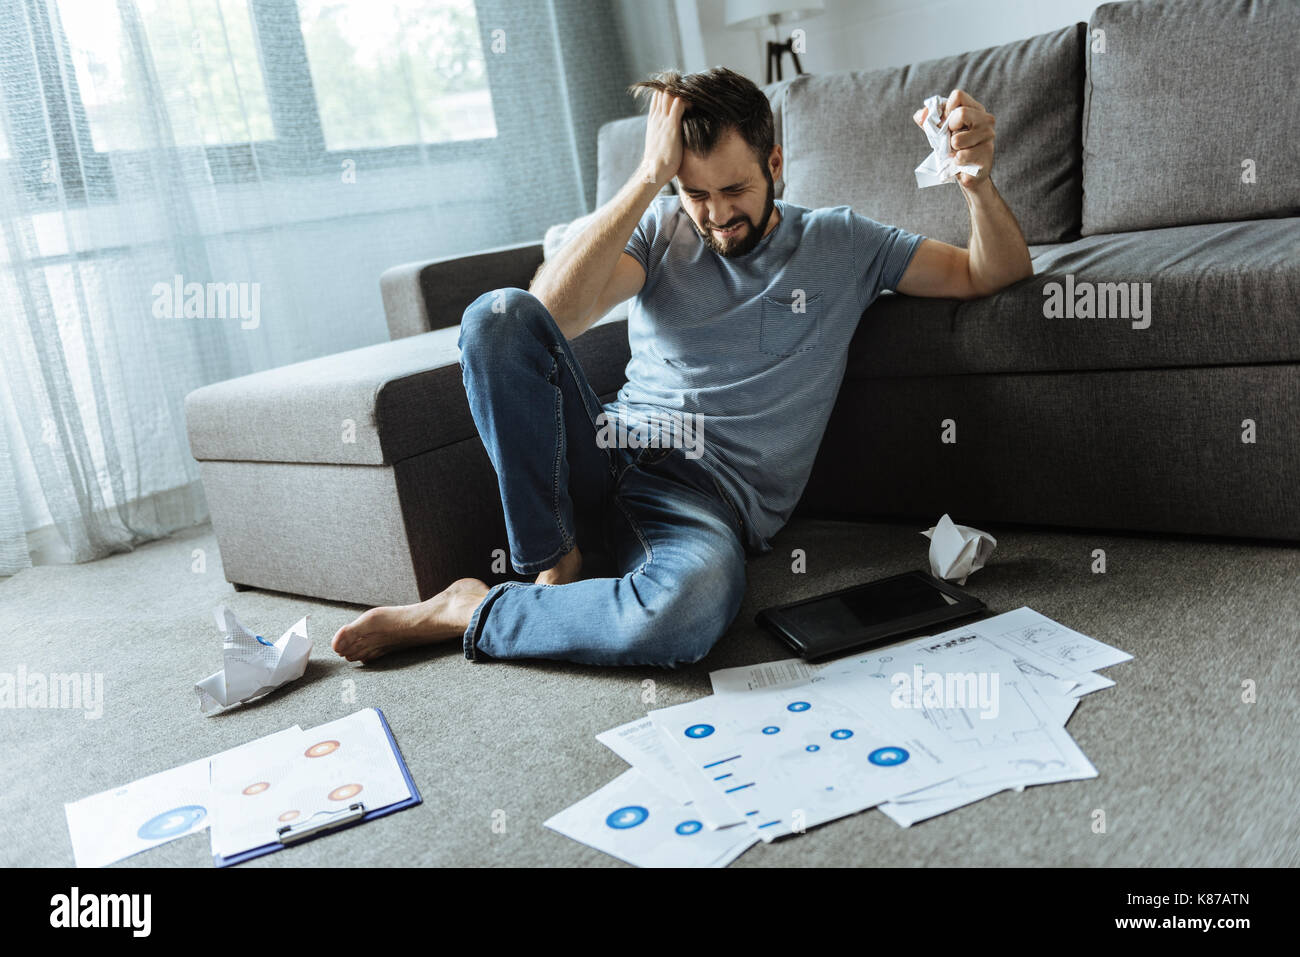 Unhappy stressed out man working at home - Stock Image